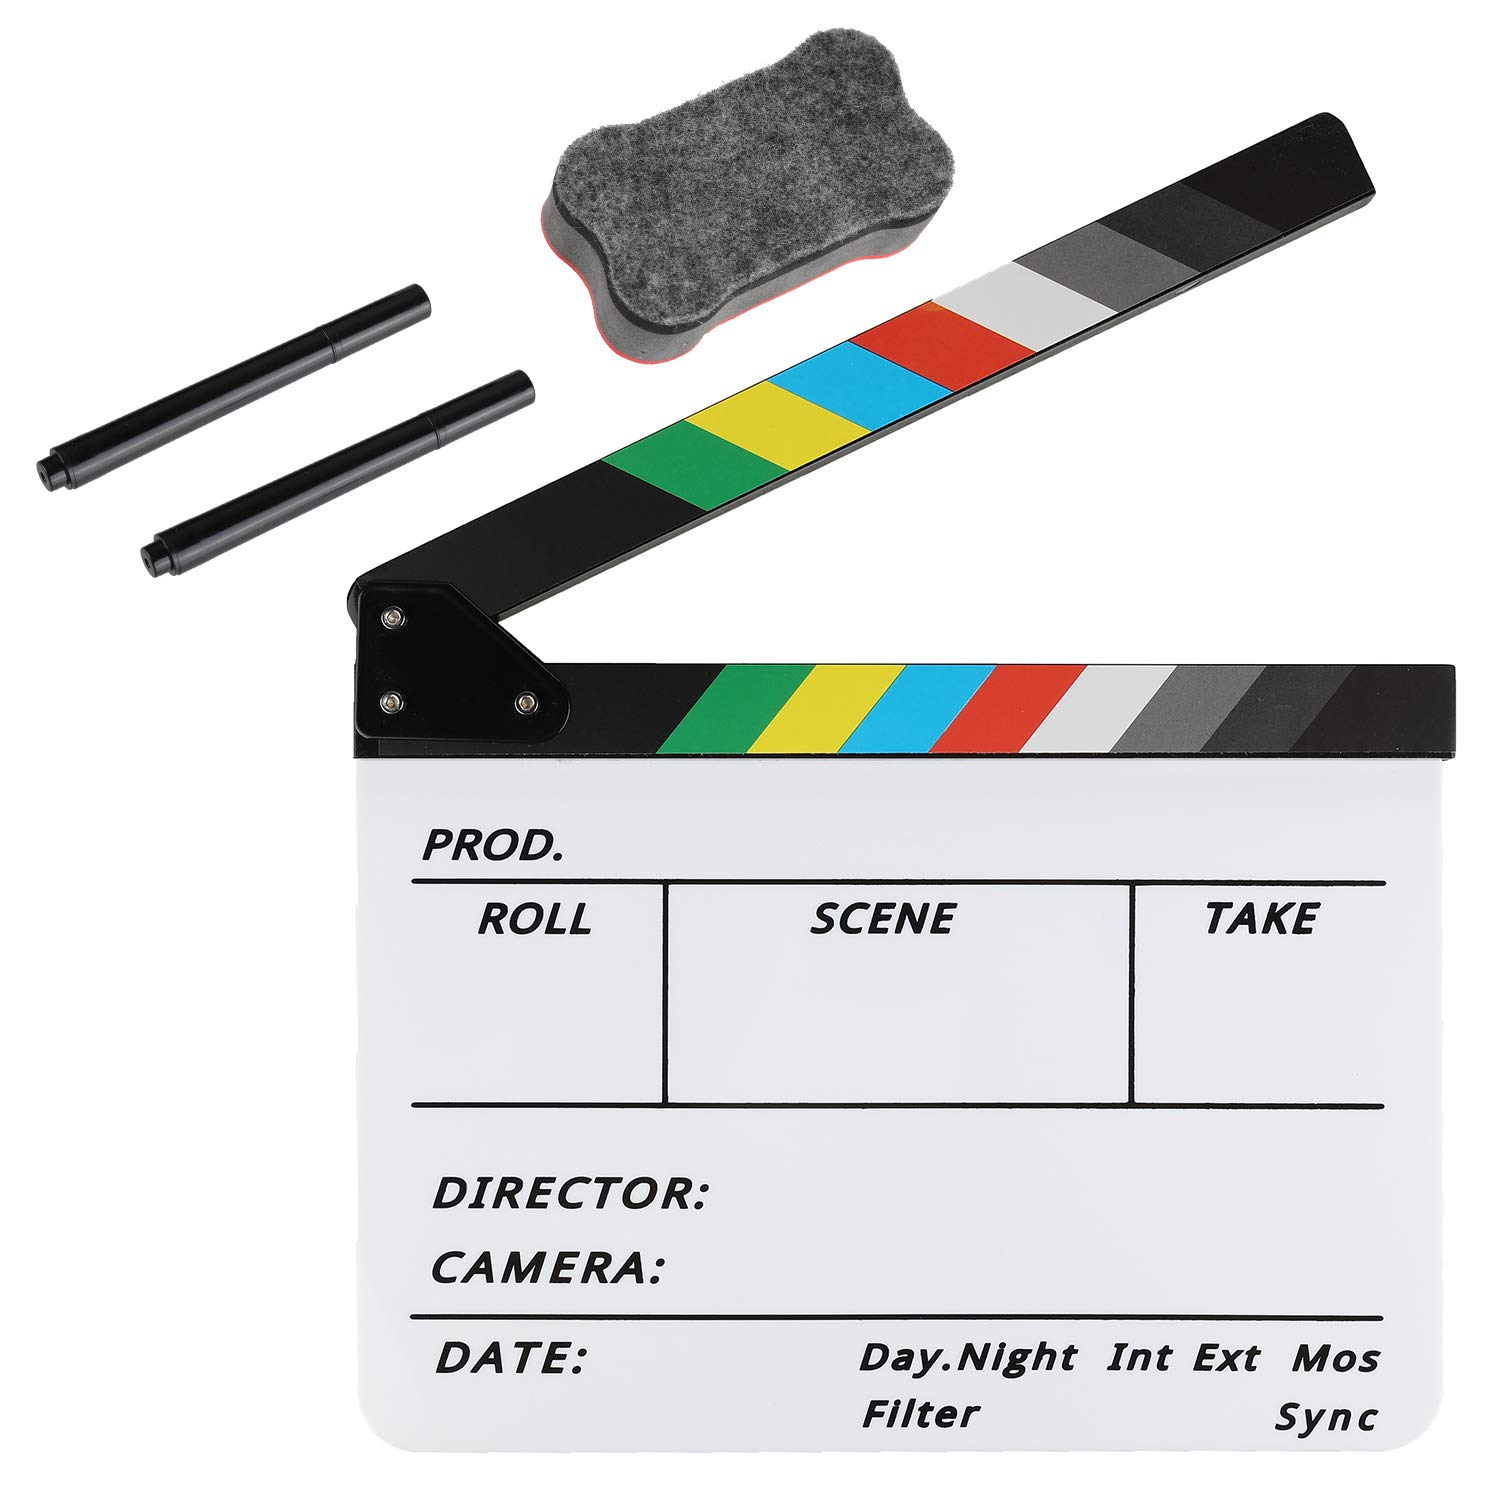 Zacro Acrylic Film Clapboard -12 x 10in Plastic Film Clapboard Cut Action Scene Clapper Board with a Magnetic Blackboard Eraser and Two Custom Pens by Zacro